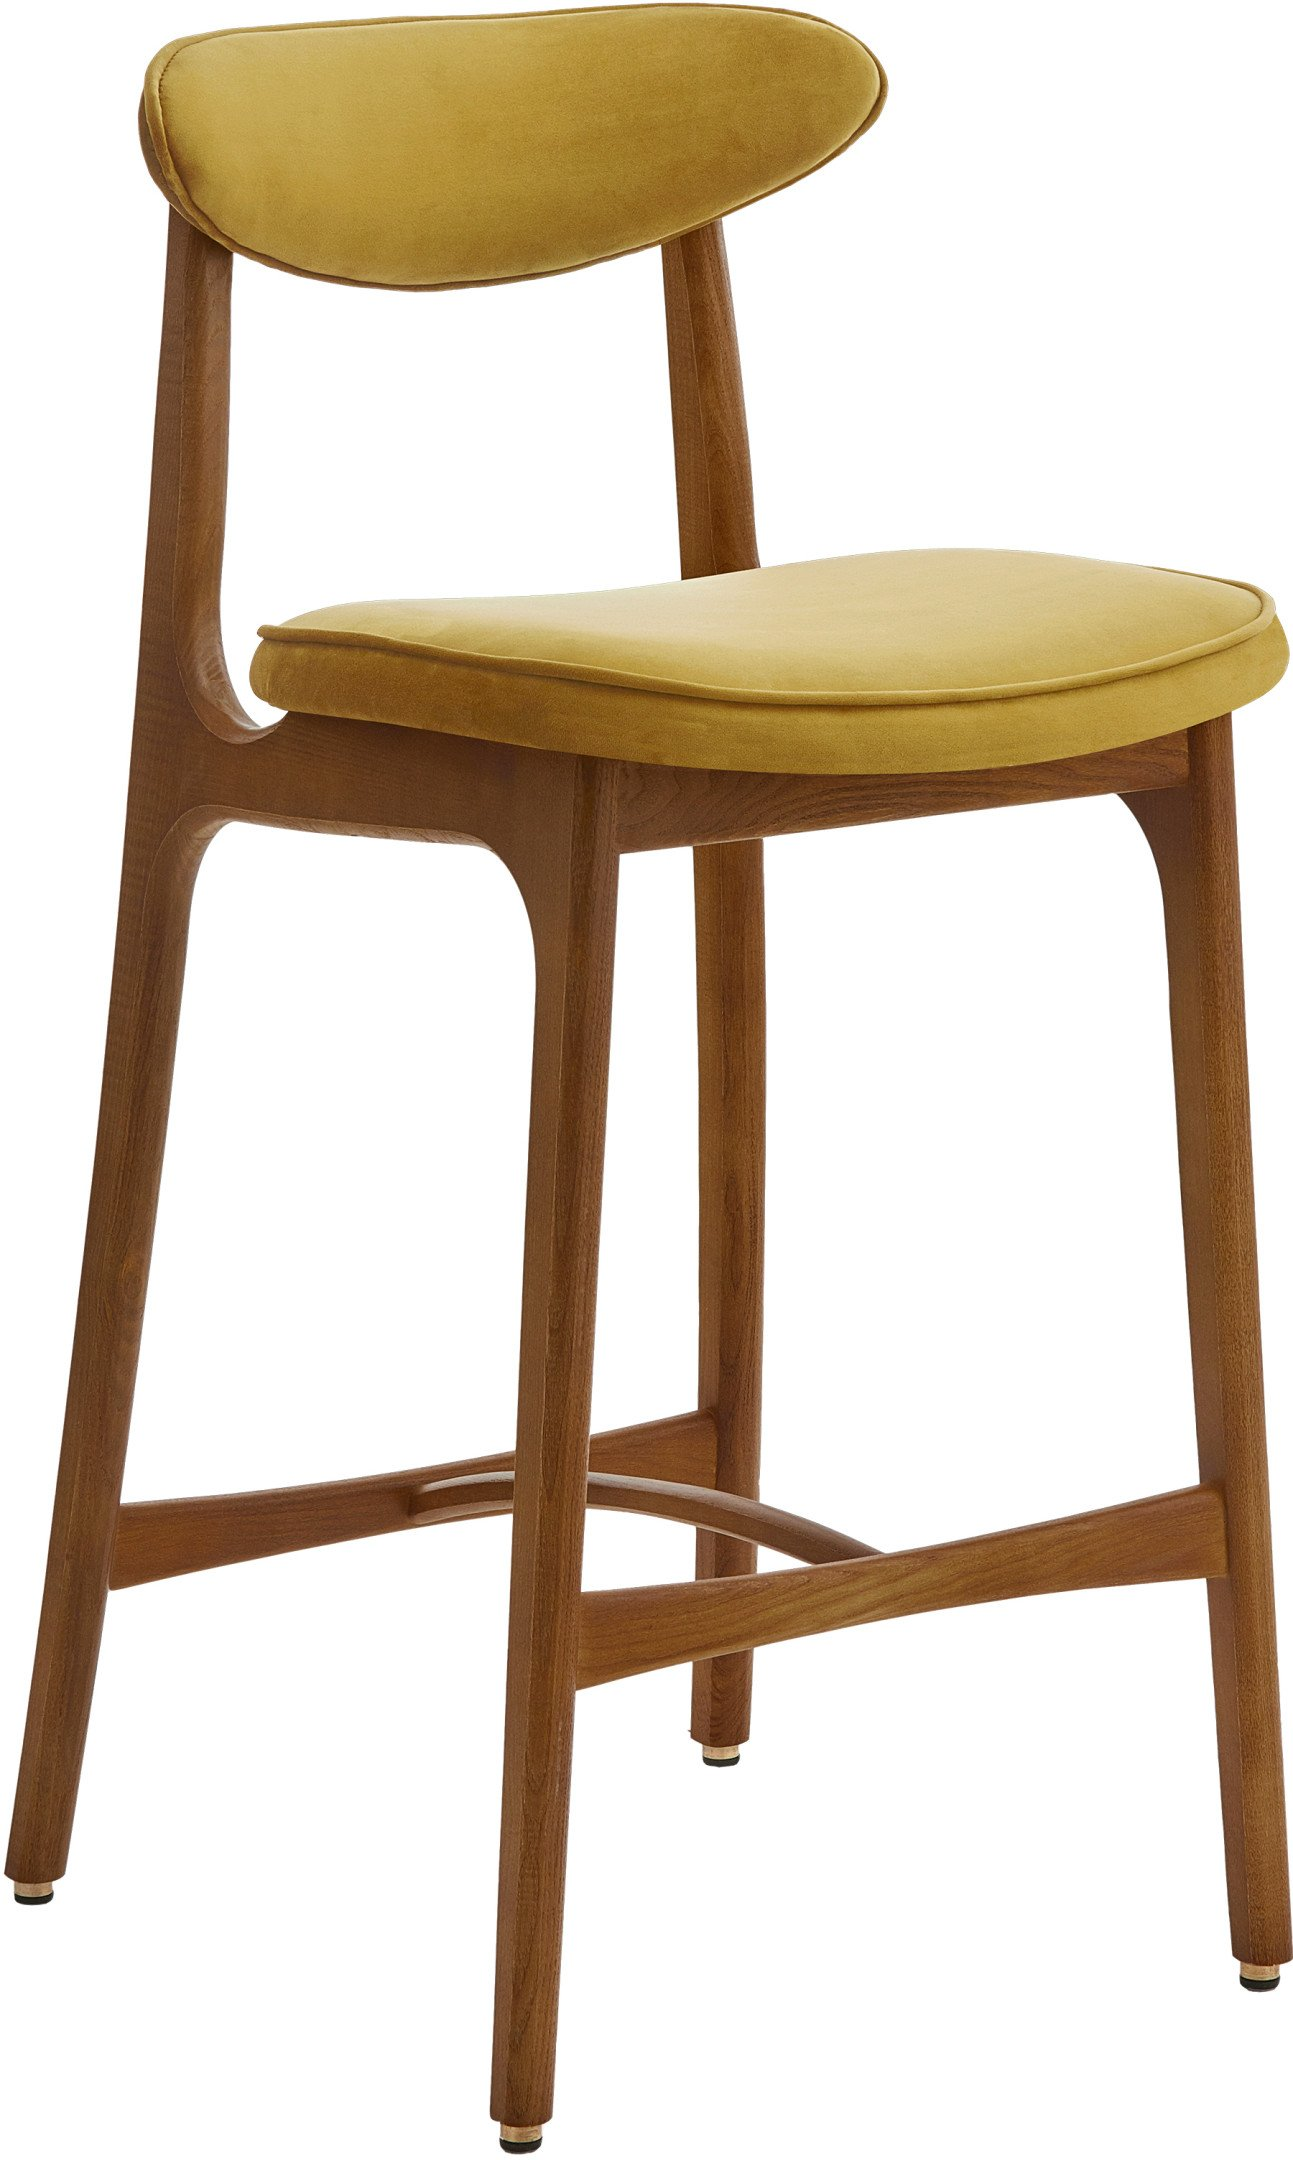 200-190 Bar Stool 65 Chair, Shine Velvet Mustard, 366 Concept